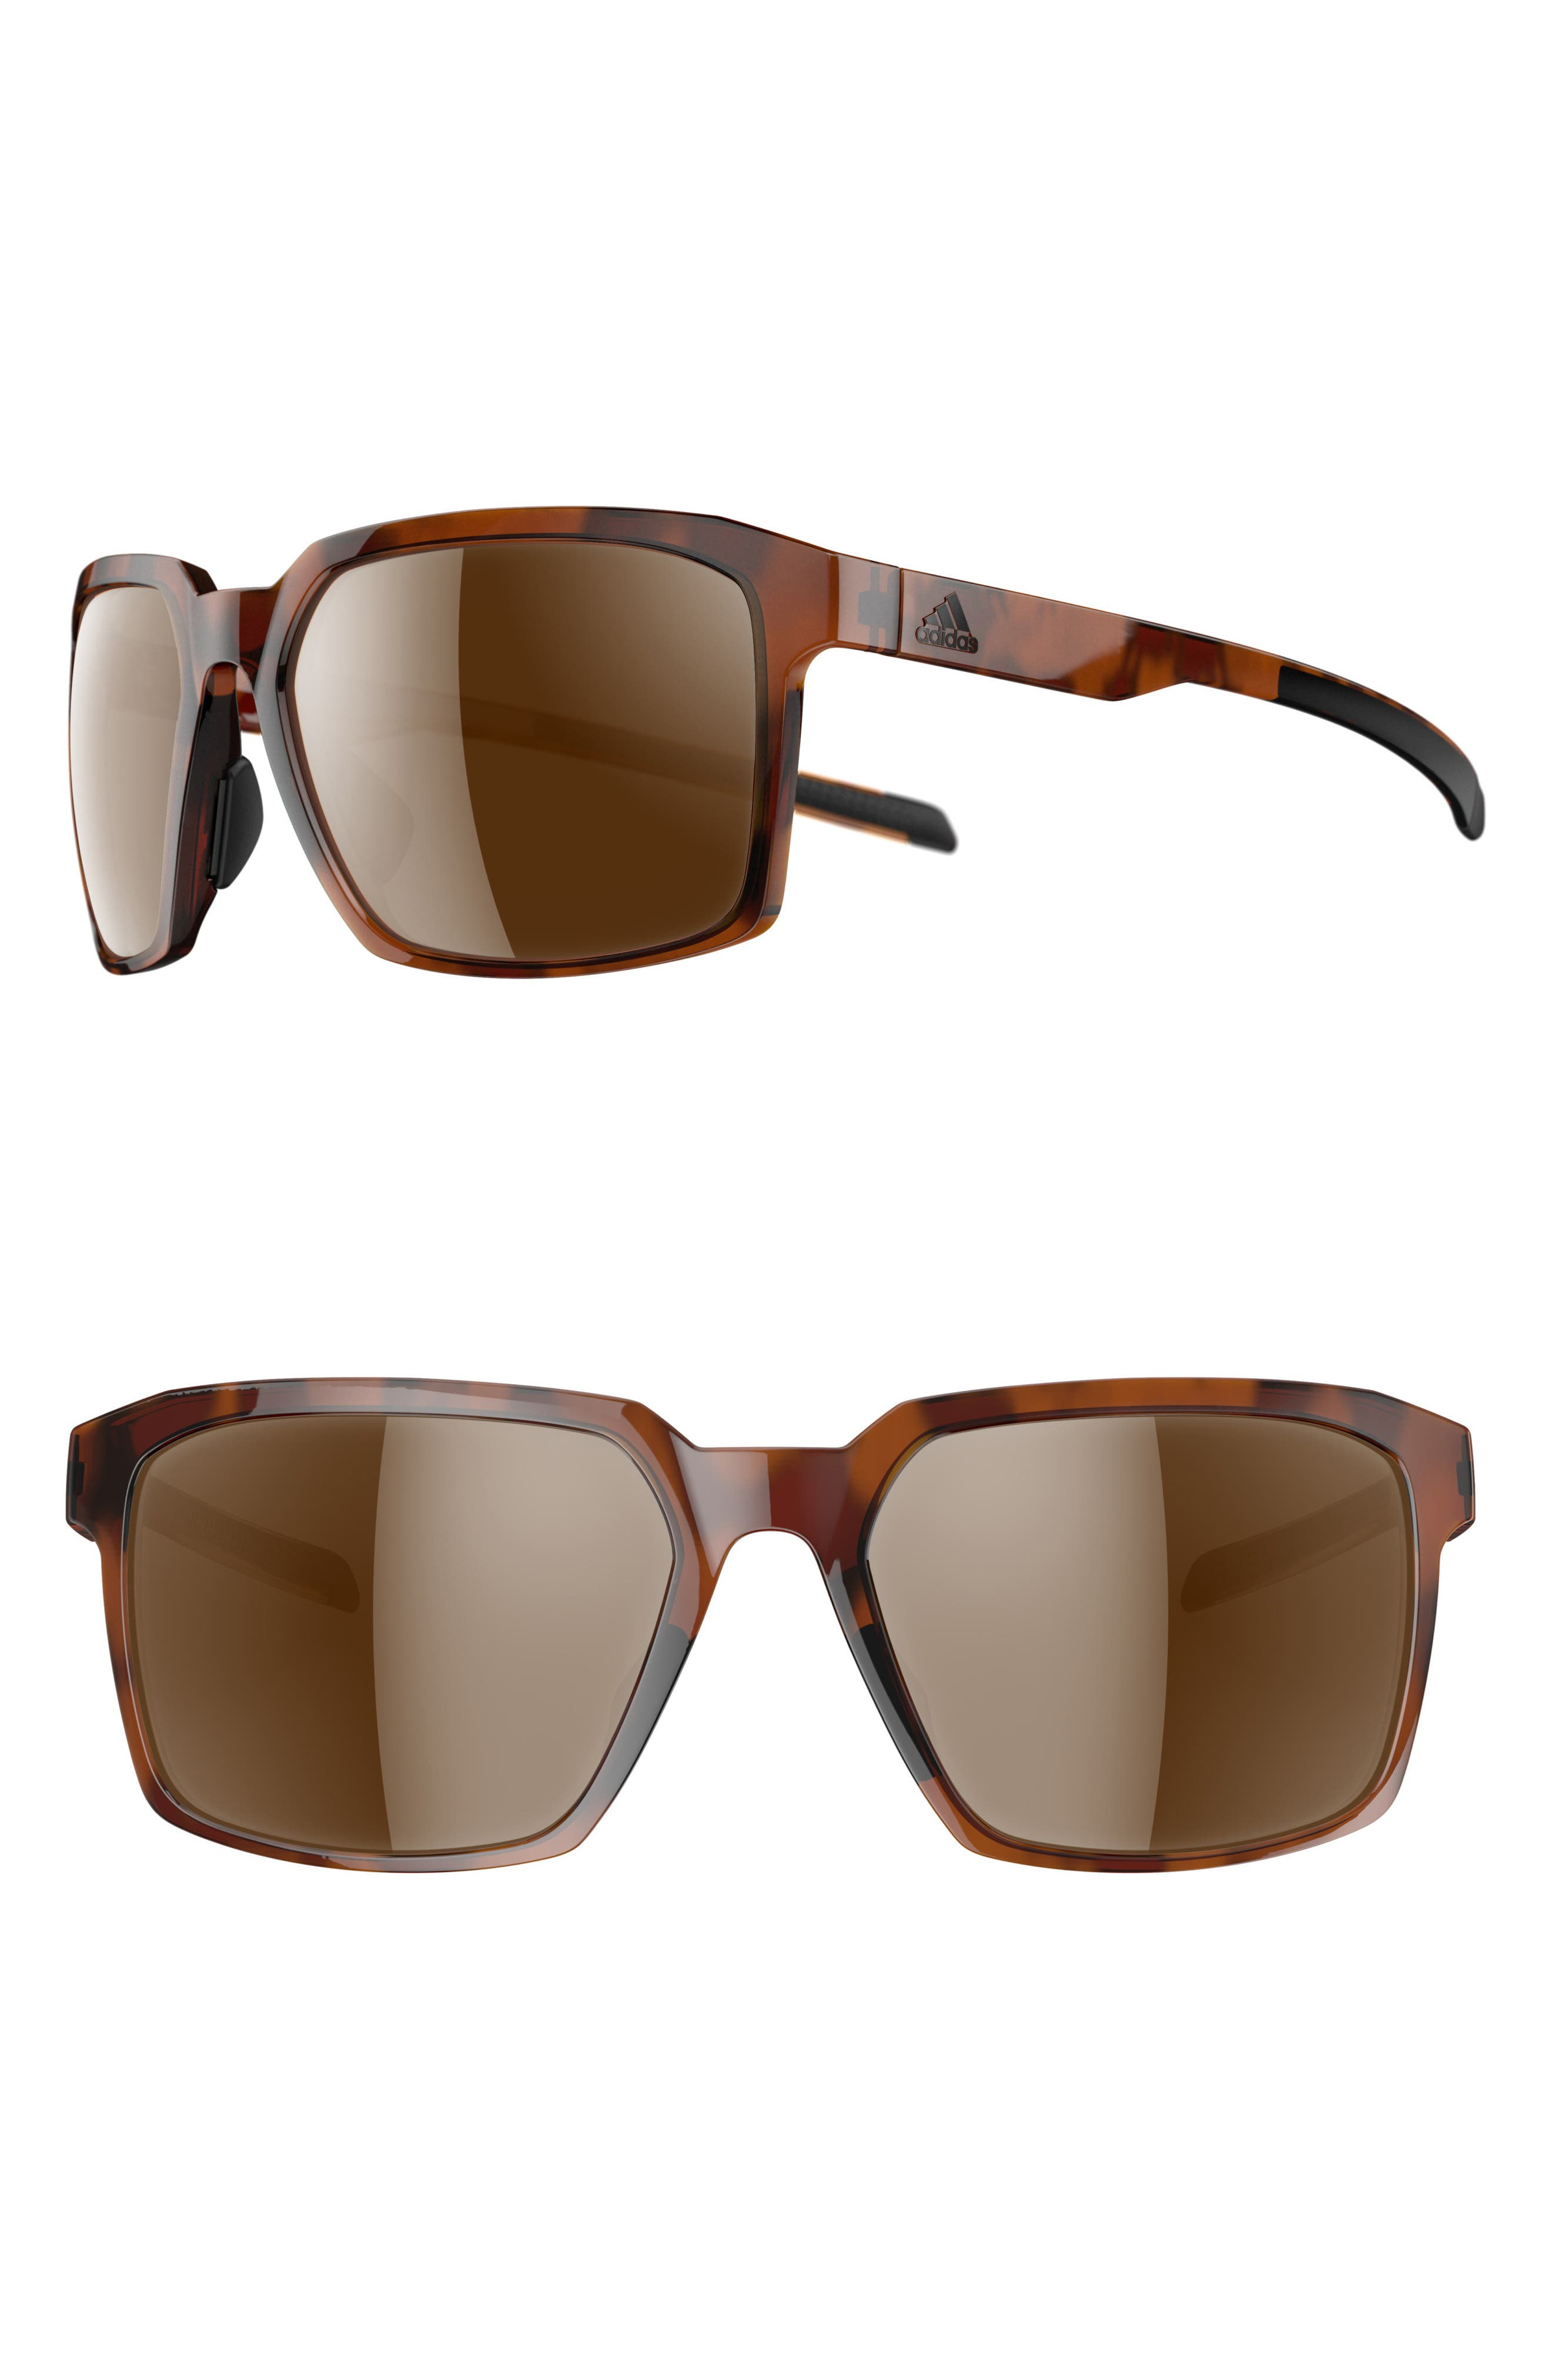 Evolver LST 60mm Sunglasses,                             Main thumbnail 1, color,                             BROWN HAVANA/ CONTRAST SILVER